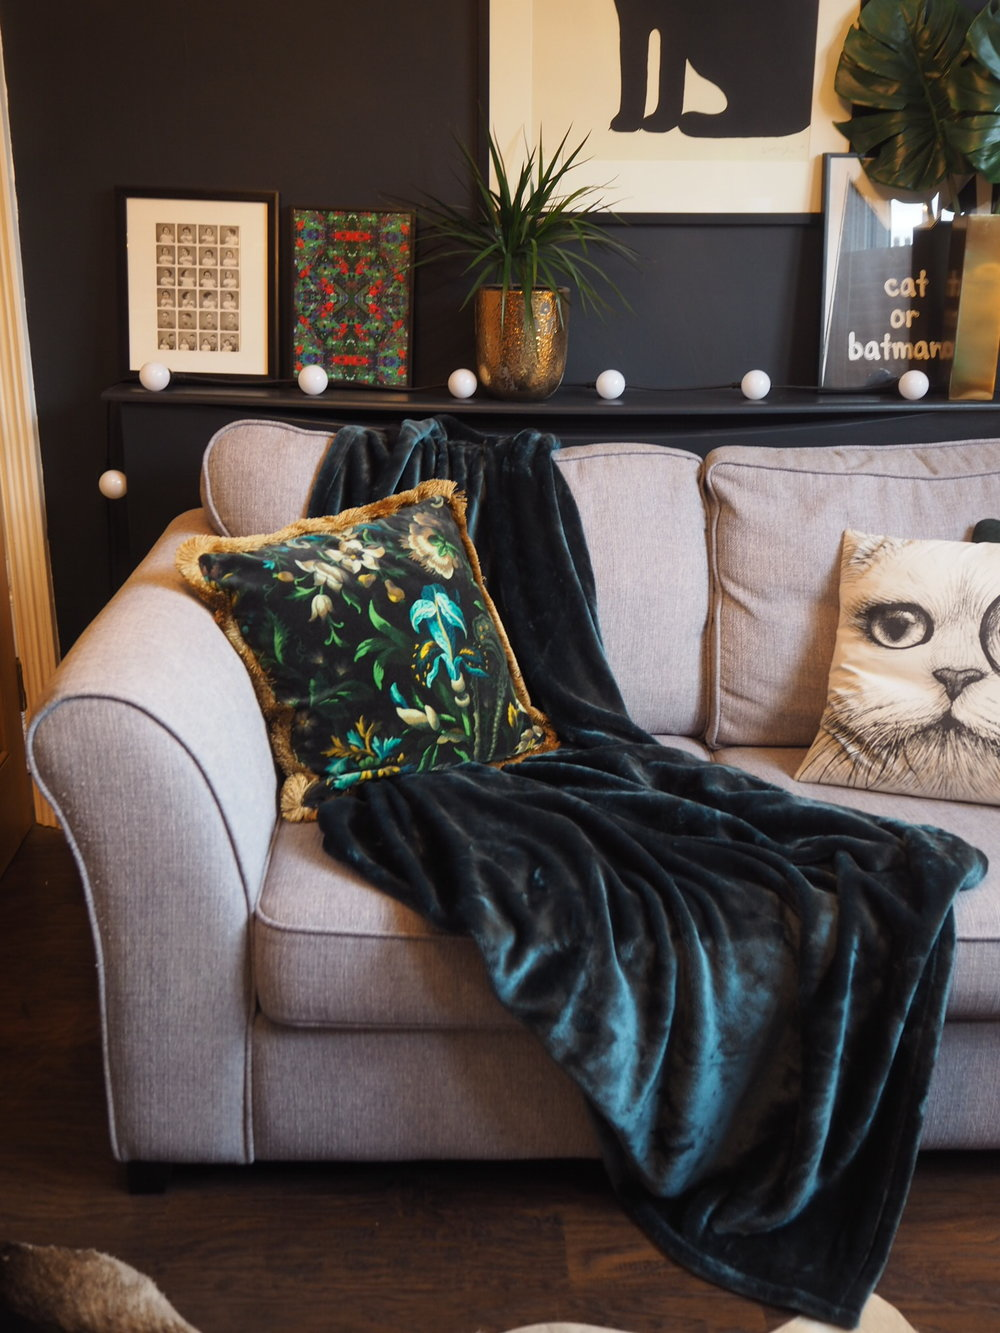 Cosy Autumn update with a plush throw from Wayfair